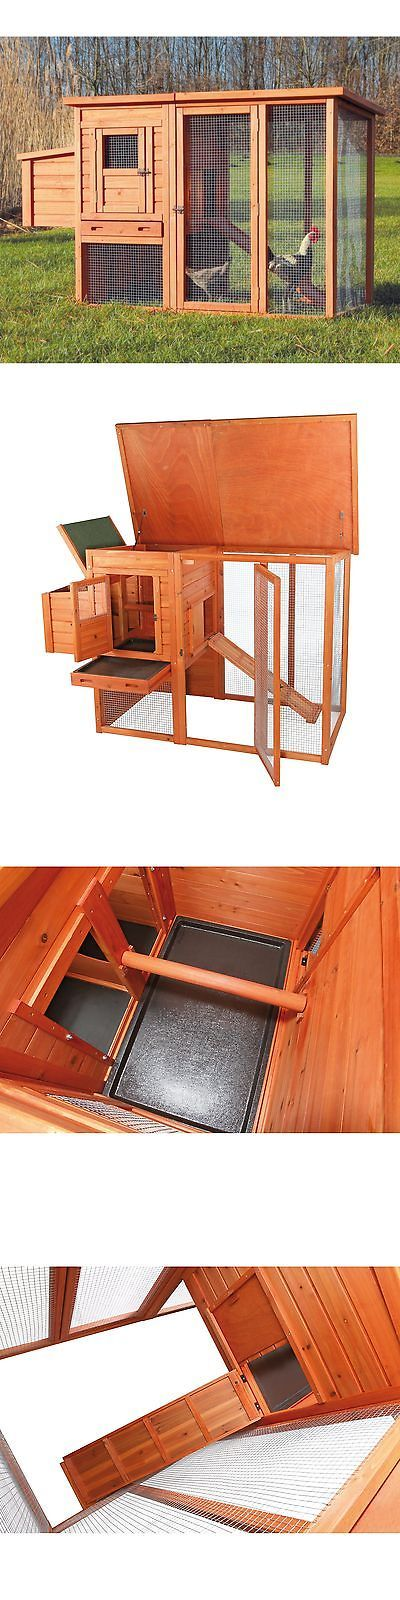 Backyard Poultry Supplies 177801: Trixie Chicken Coop With Outdoor Run, Brown -> BUY IT NOW ONLY: $178.73 on eBay!